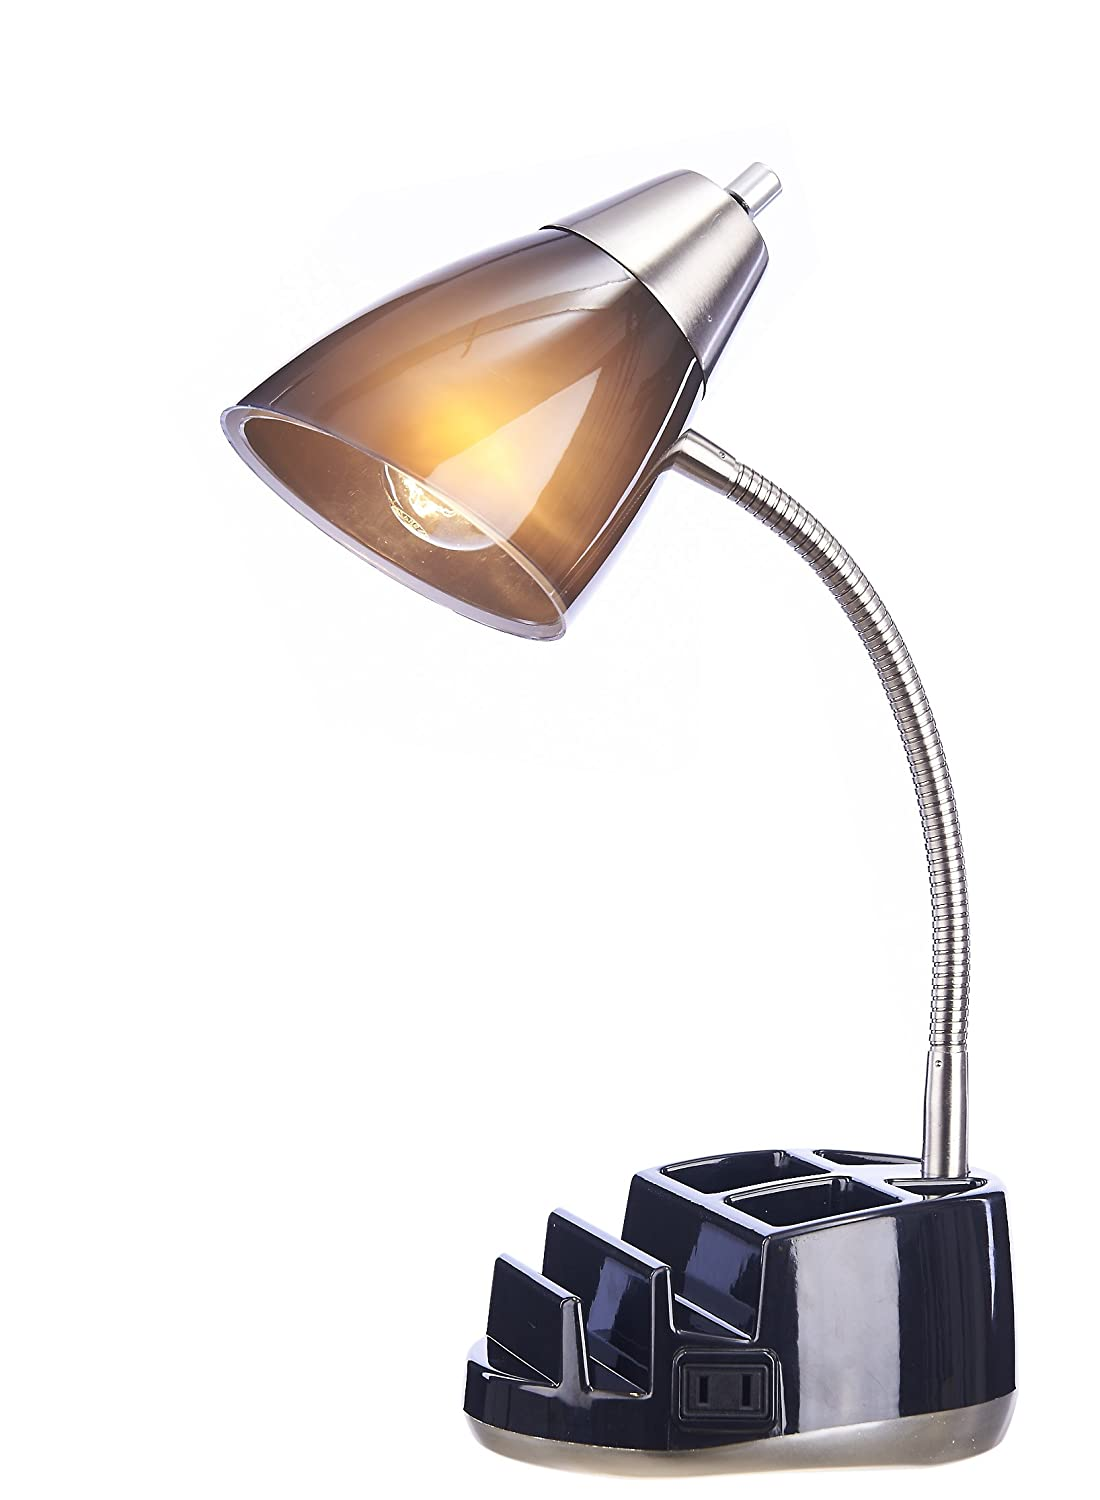 Catalina Lighting 20106-007 Greystone Clear Organizer Desk Lamp in a Brushed Steel Shade with Power Outlet, Black